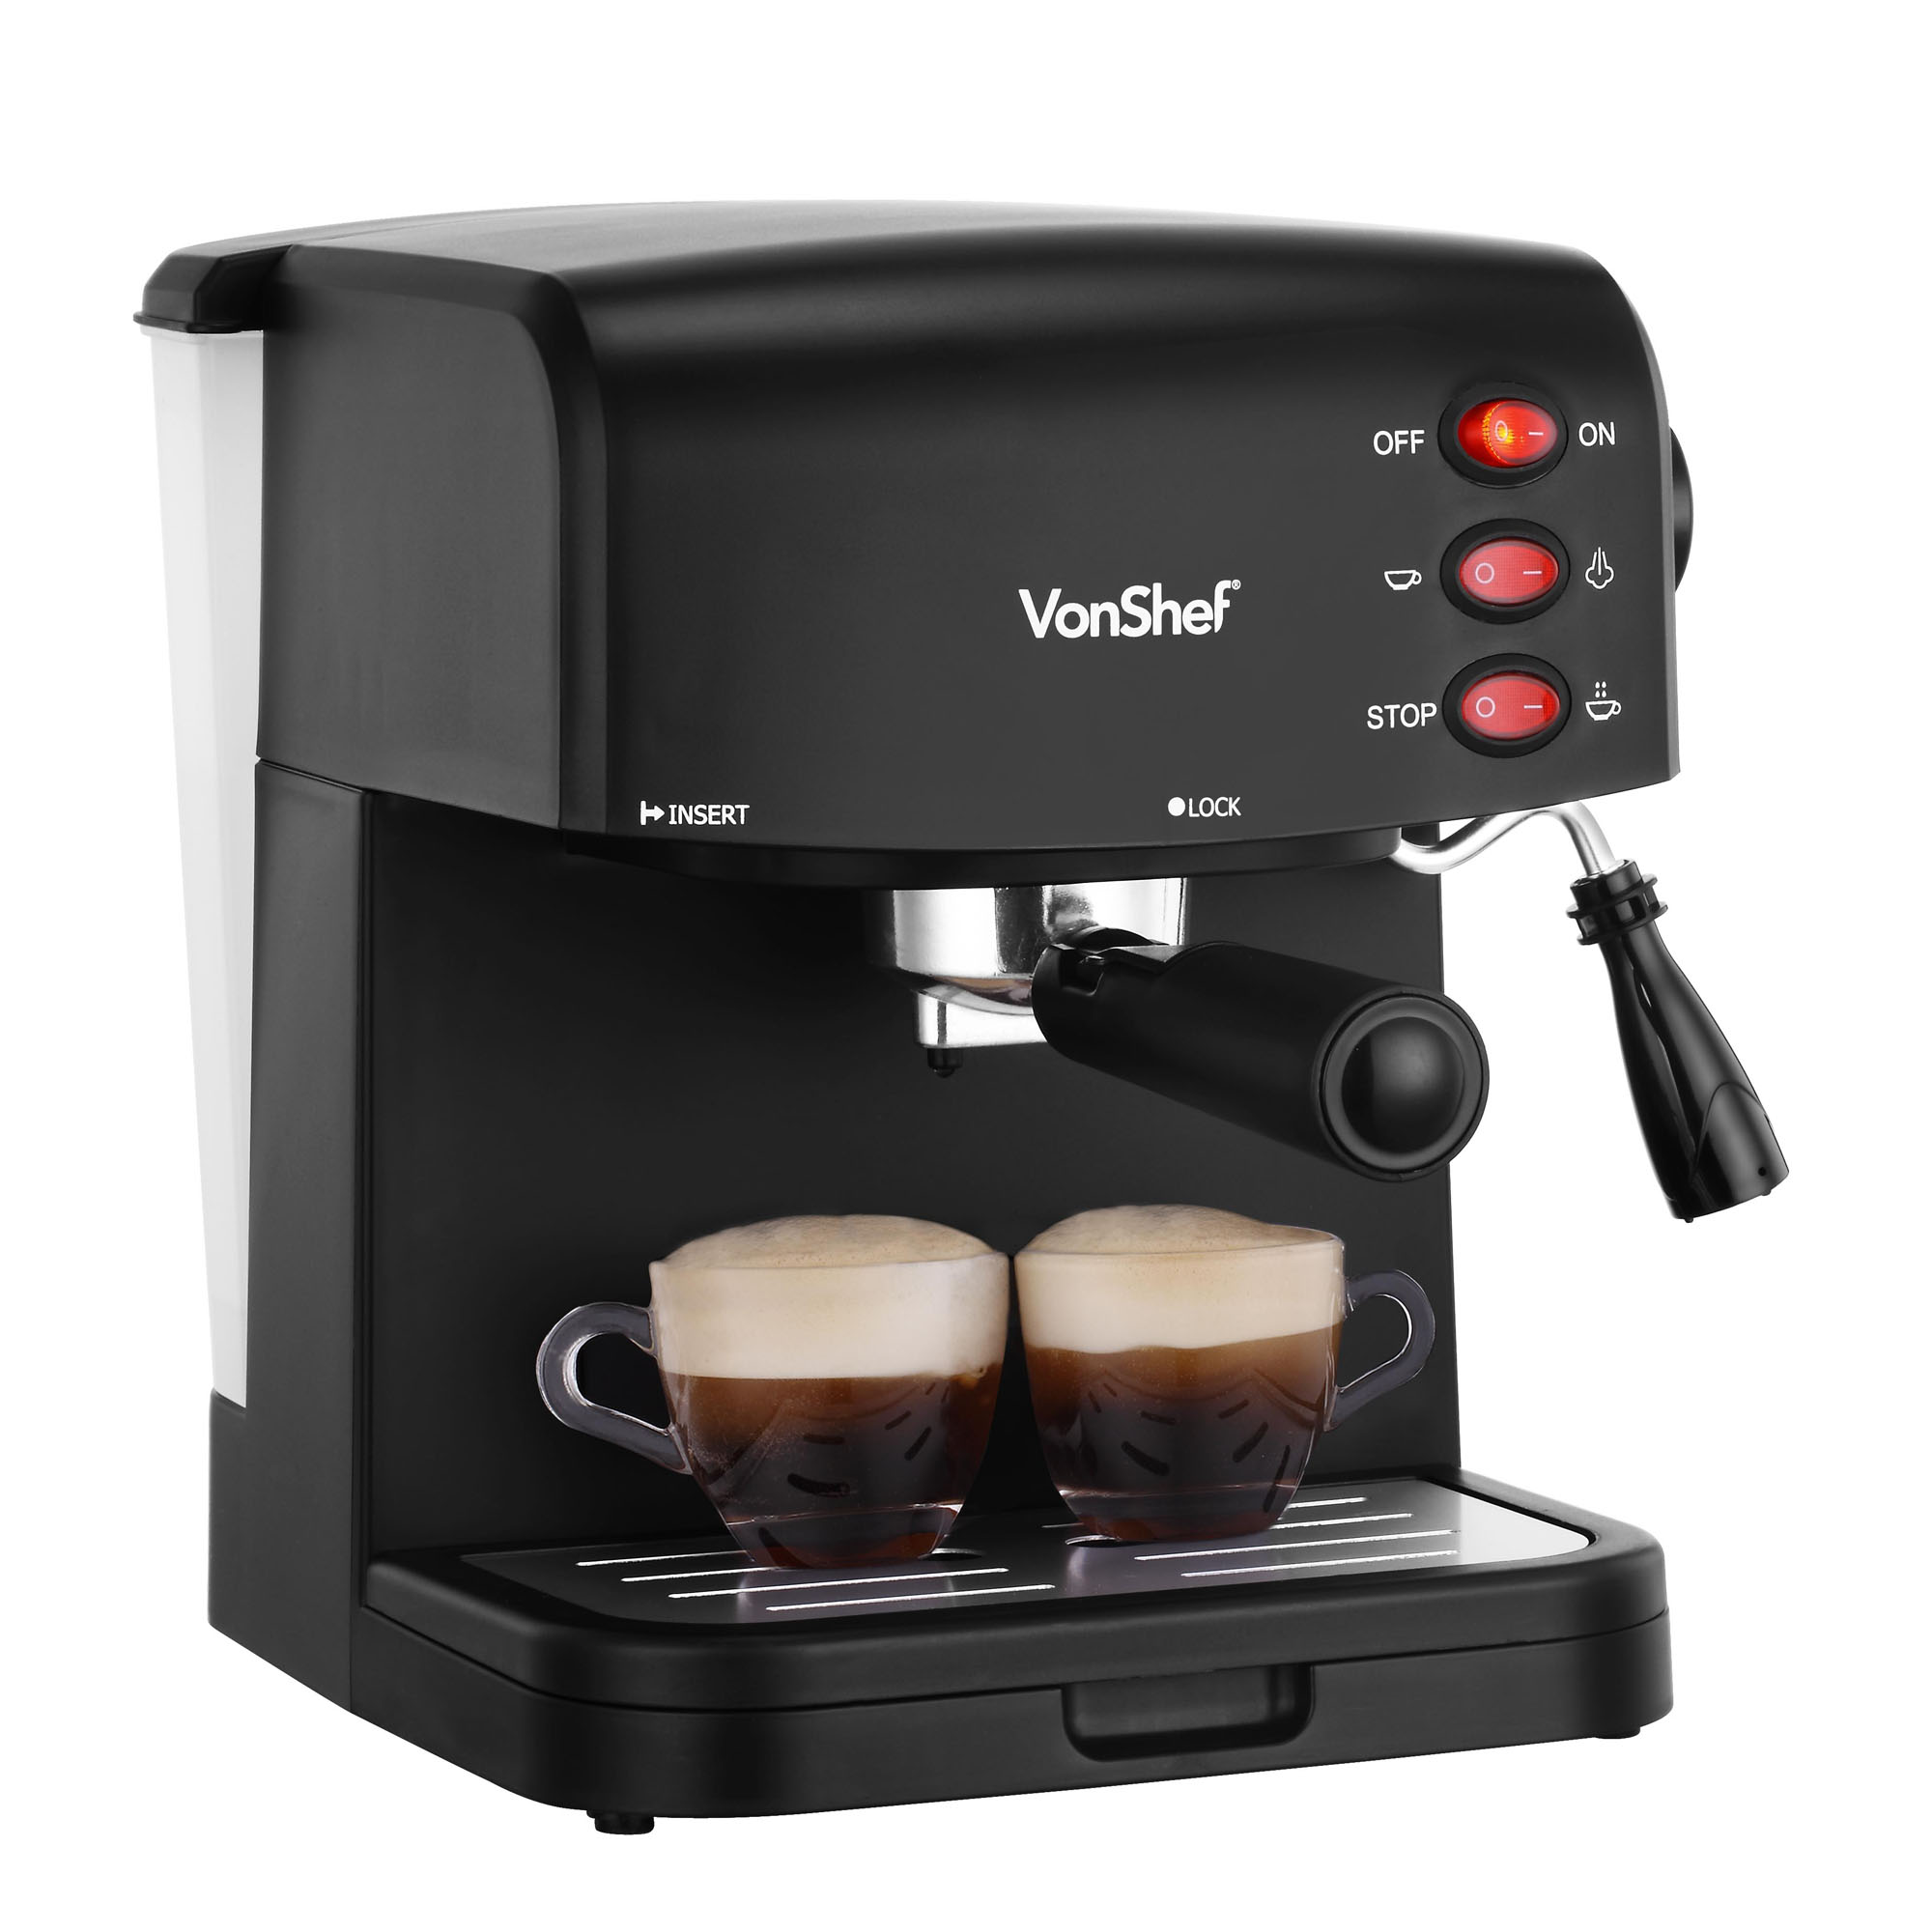 vonshef 15 bar espresso machine cappuccino latte coffee maker 850w black ebay. Black Bedroom Furniture Sets. Home Design Ideas